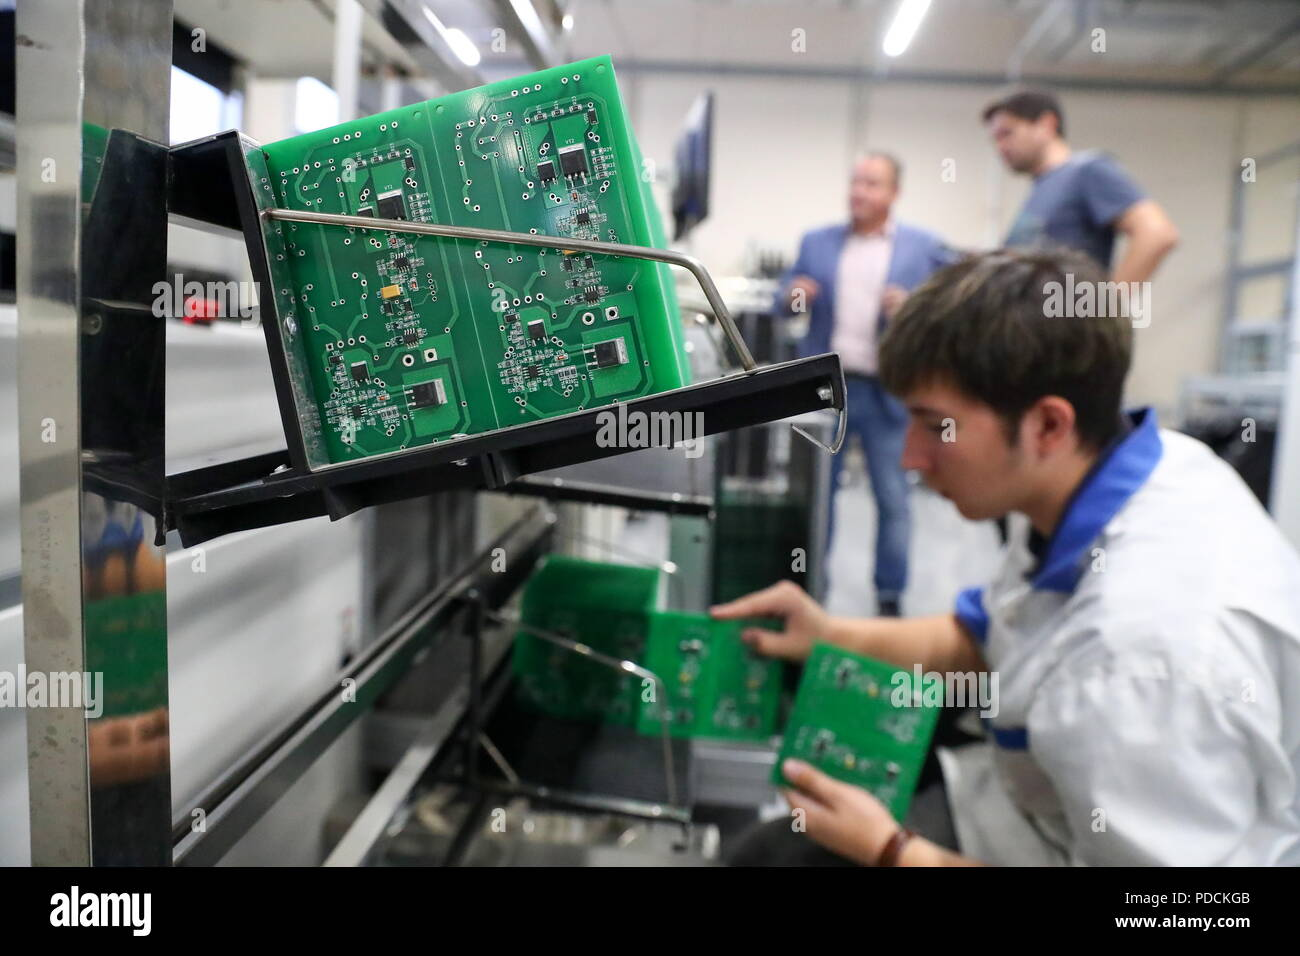 Moscow Russia August 9 2018 Printed Circuit Boards Pcb At Board Manufacturing Manufacturers Mikroem Tekhnologii A Russian Manufacturer Of Electronic Components In Zelenograd